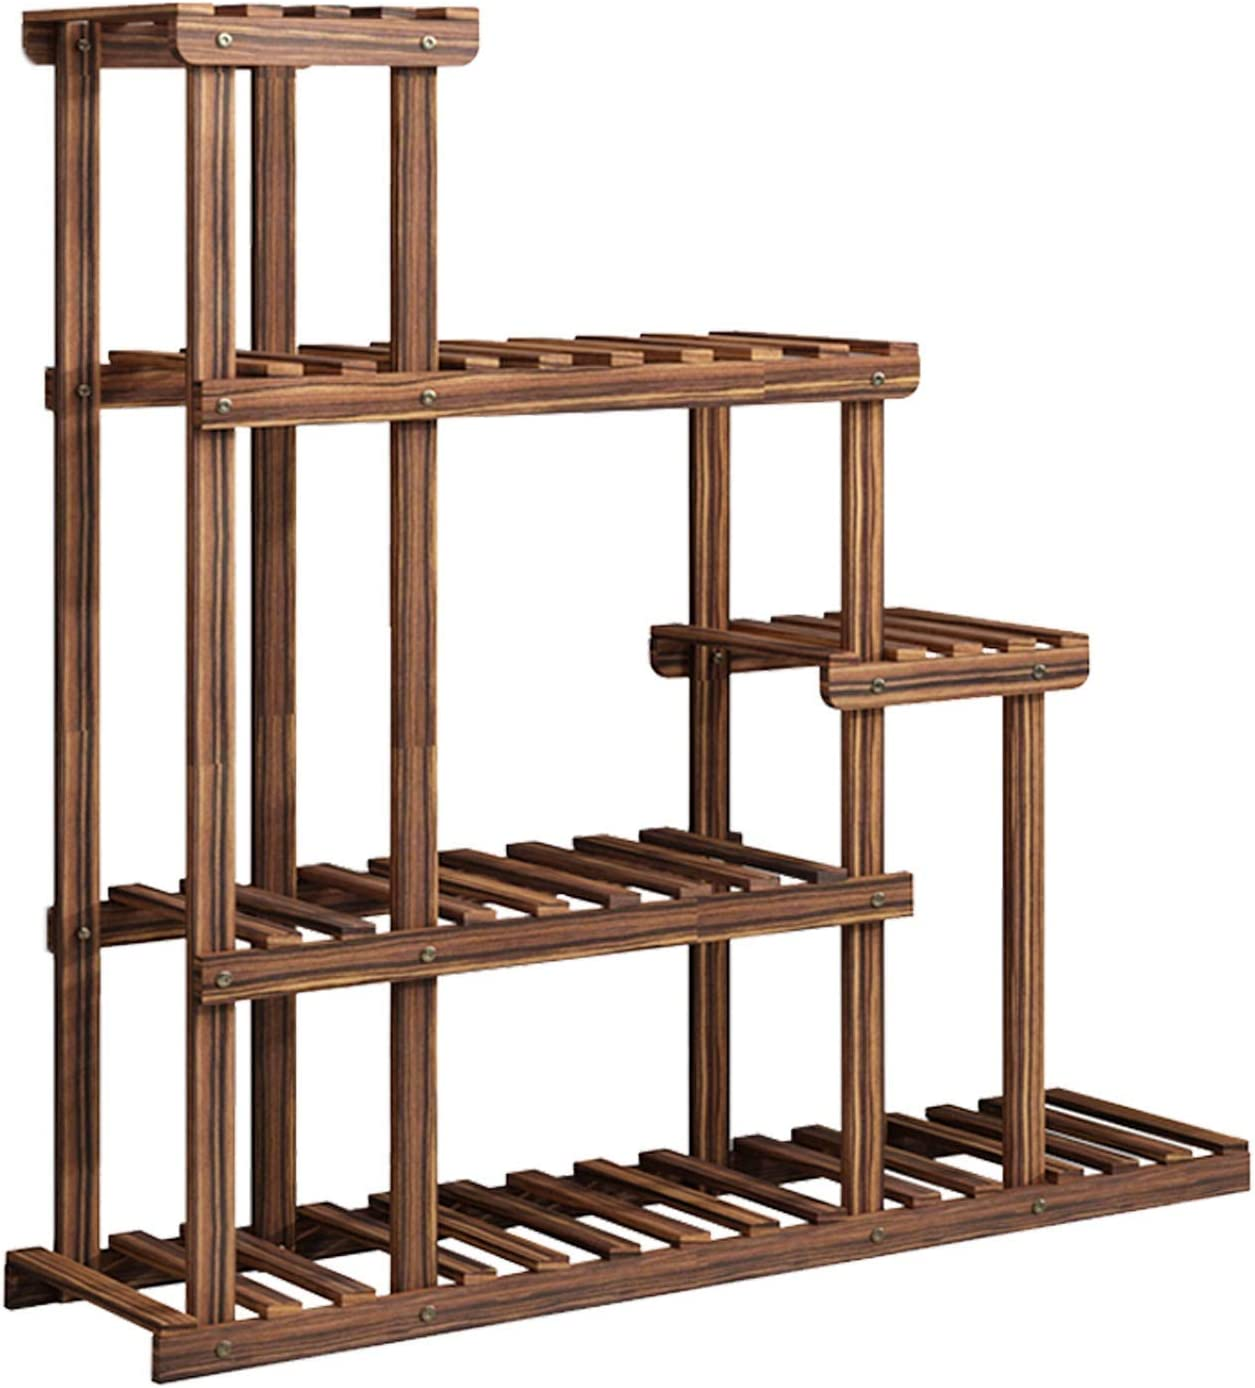 LLF-huajia 5-Layer Floor-Standing Flower Wooden Sales for sale Stan Stand San Antonio Mall Plant